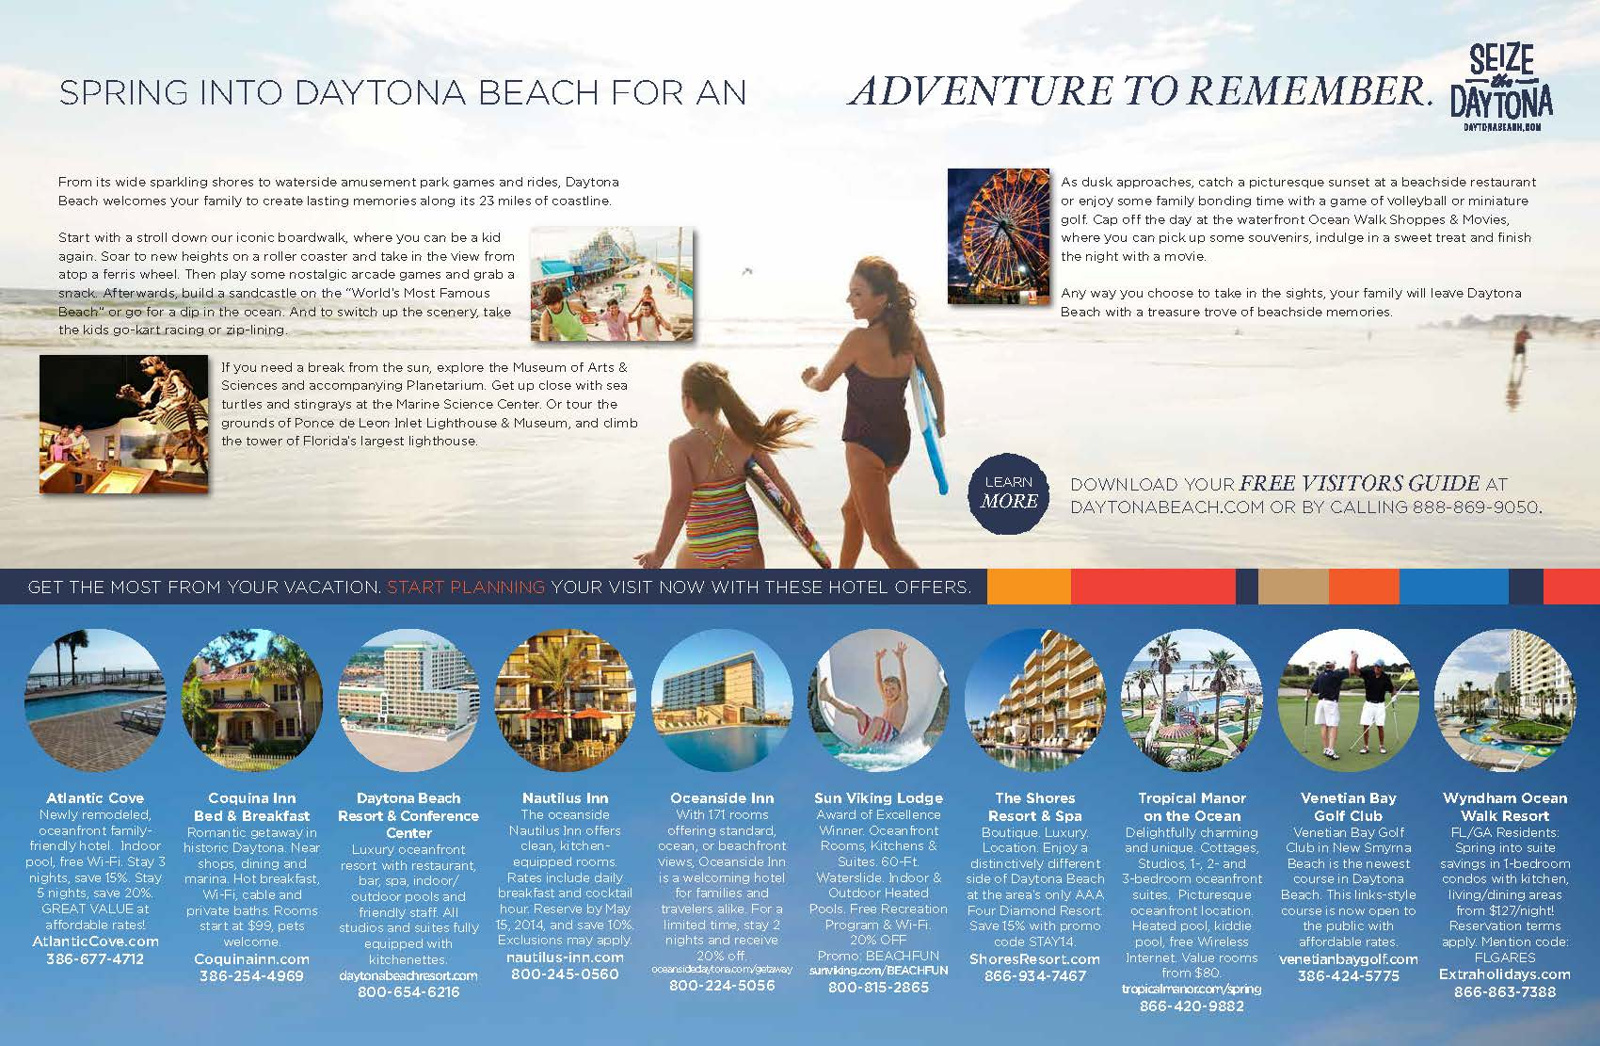 Daytona Area Convention & Visitors Bureau